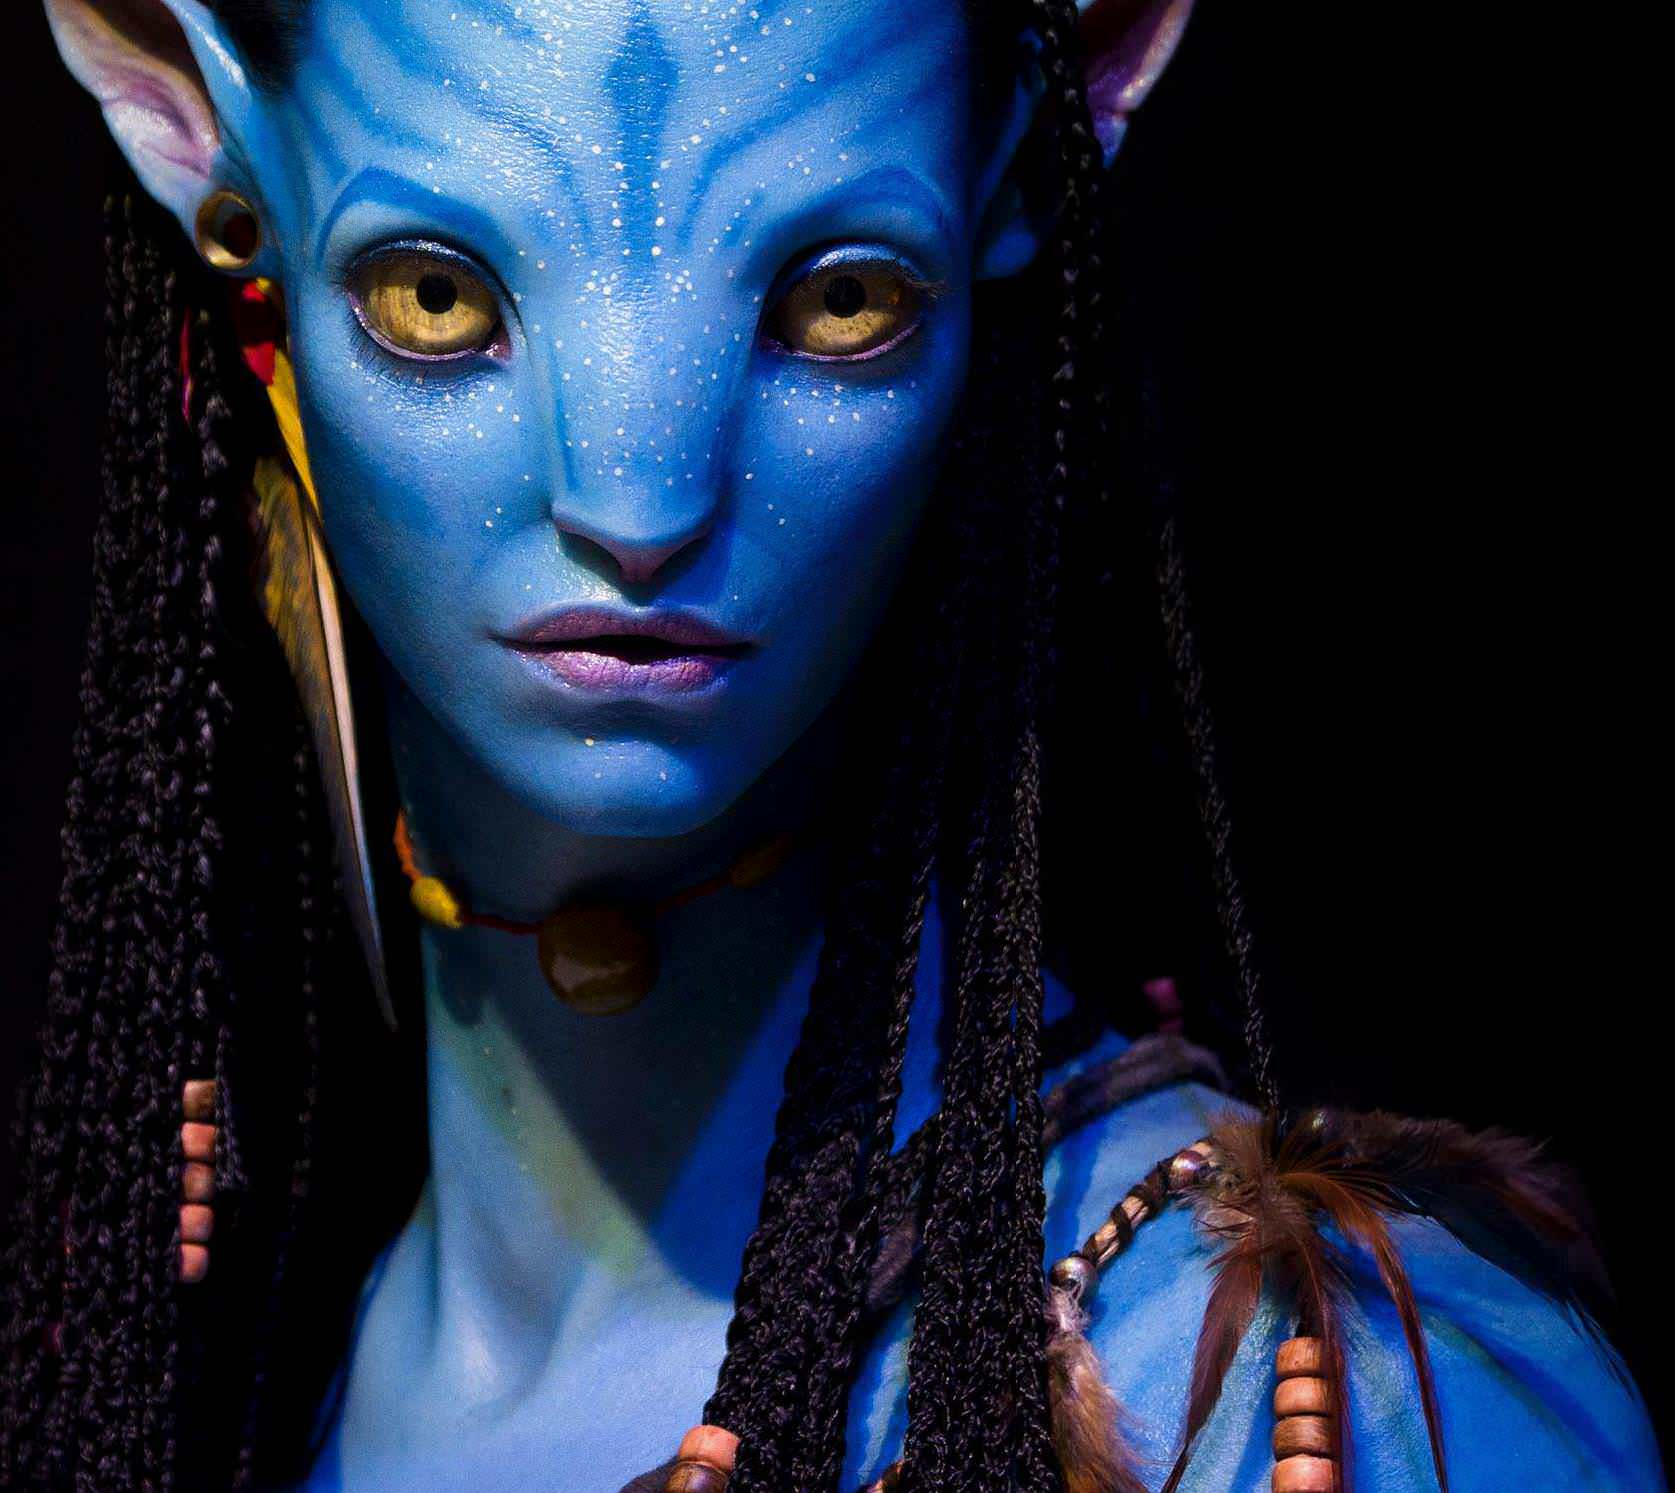 Avatar 4 2024: 'Avatar' Sequels Now Scheduled To Start In December 2020